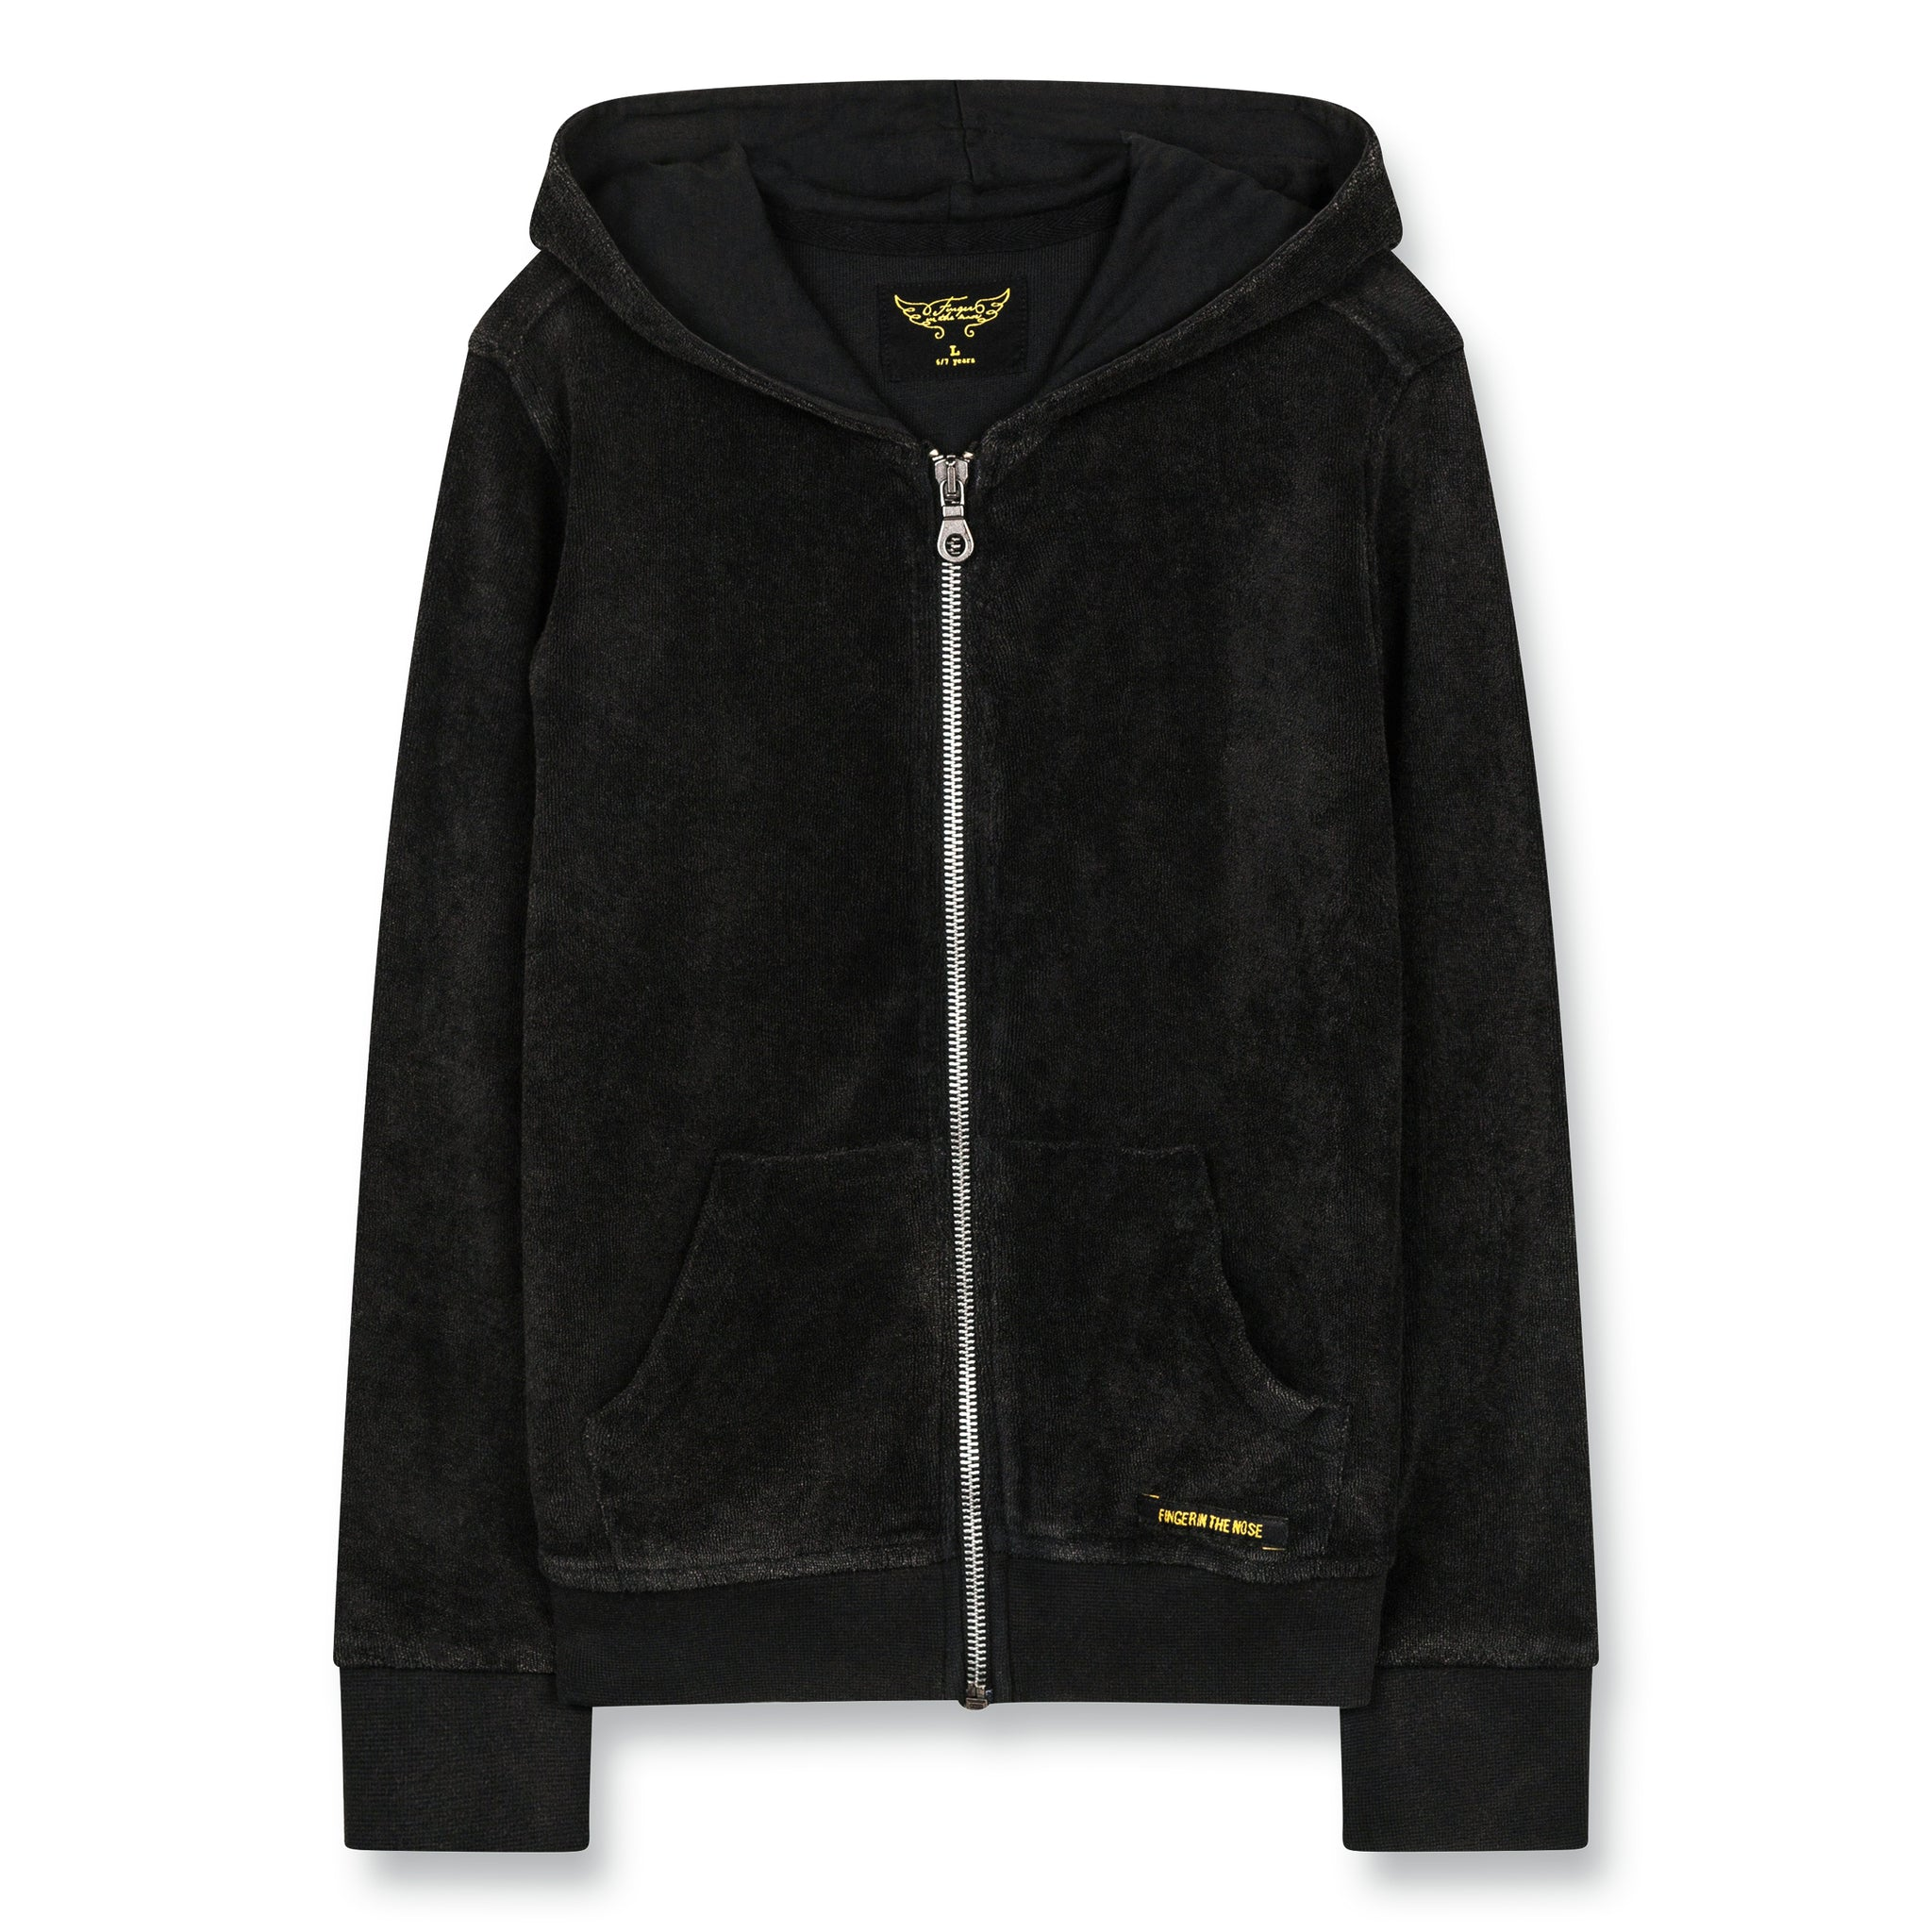 HAYDEN Vintage Black - Zipped Hoody 1